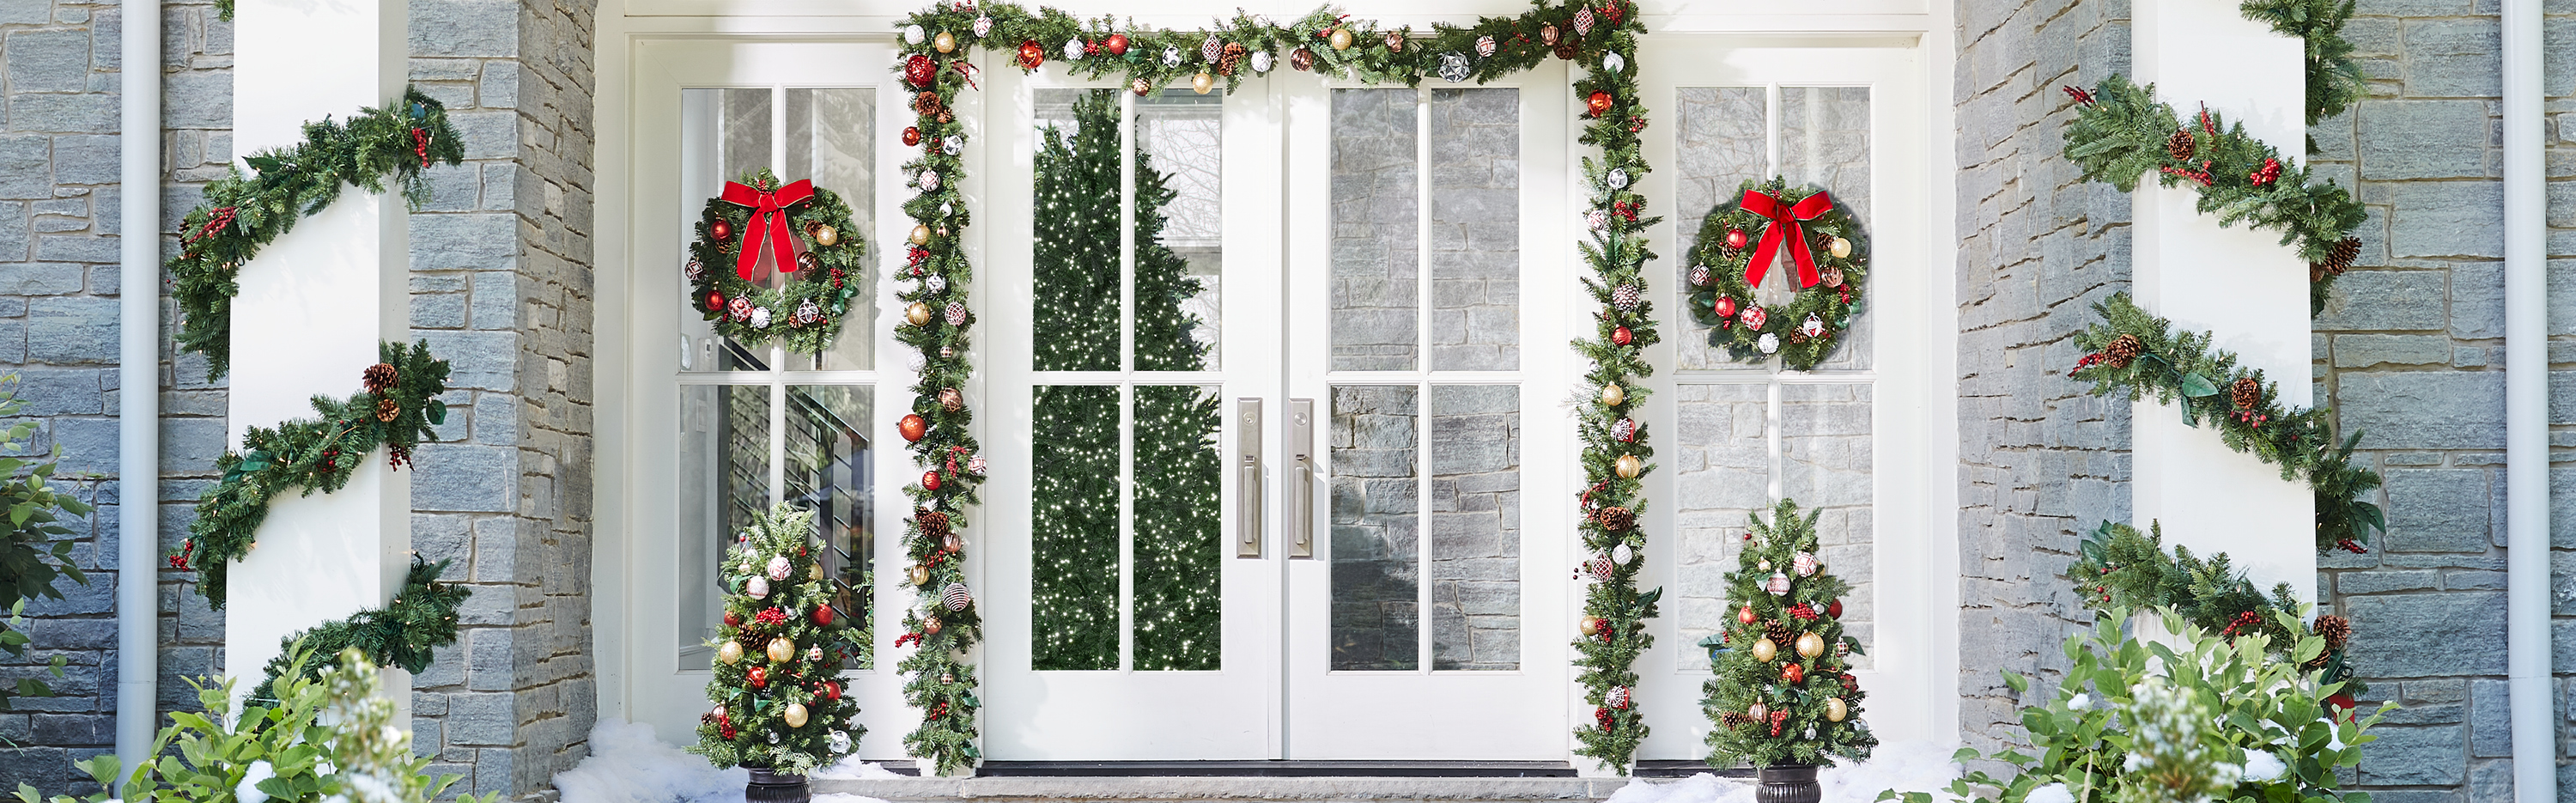 The Home Depot | Five Holiday Decorations You Can Leave Up All Year Long